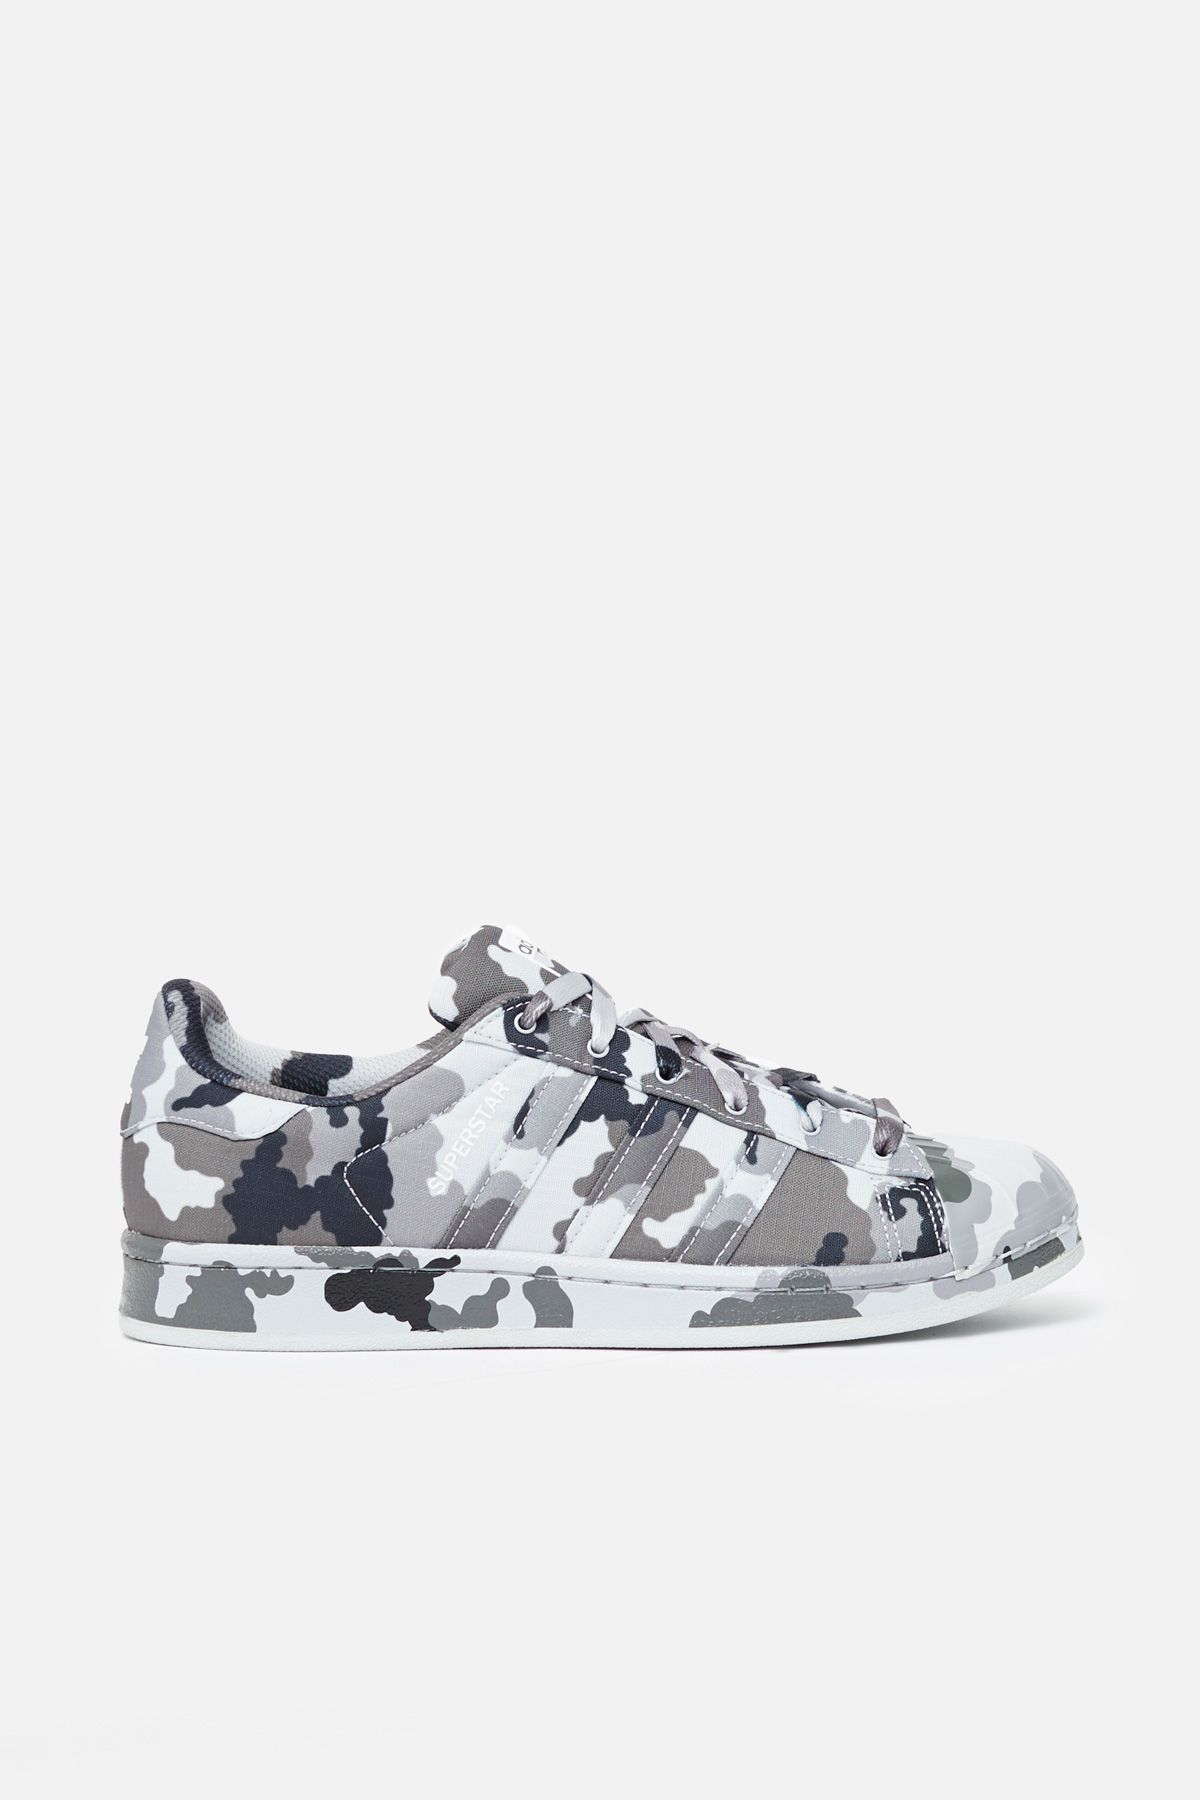 official photos 107a4 a9972 Style Mec, Adidas Superstar Camo, Basket Sneakers, Shoes Sneakers, Sneakers  Fashion,